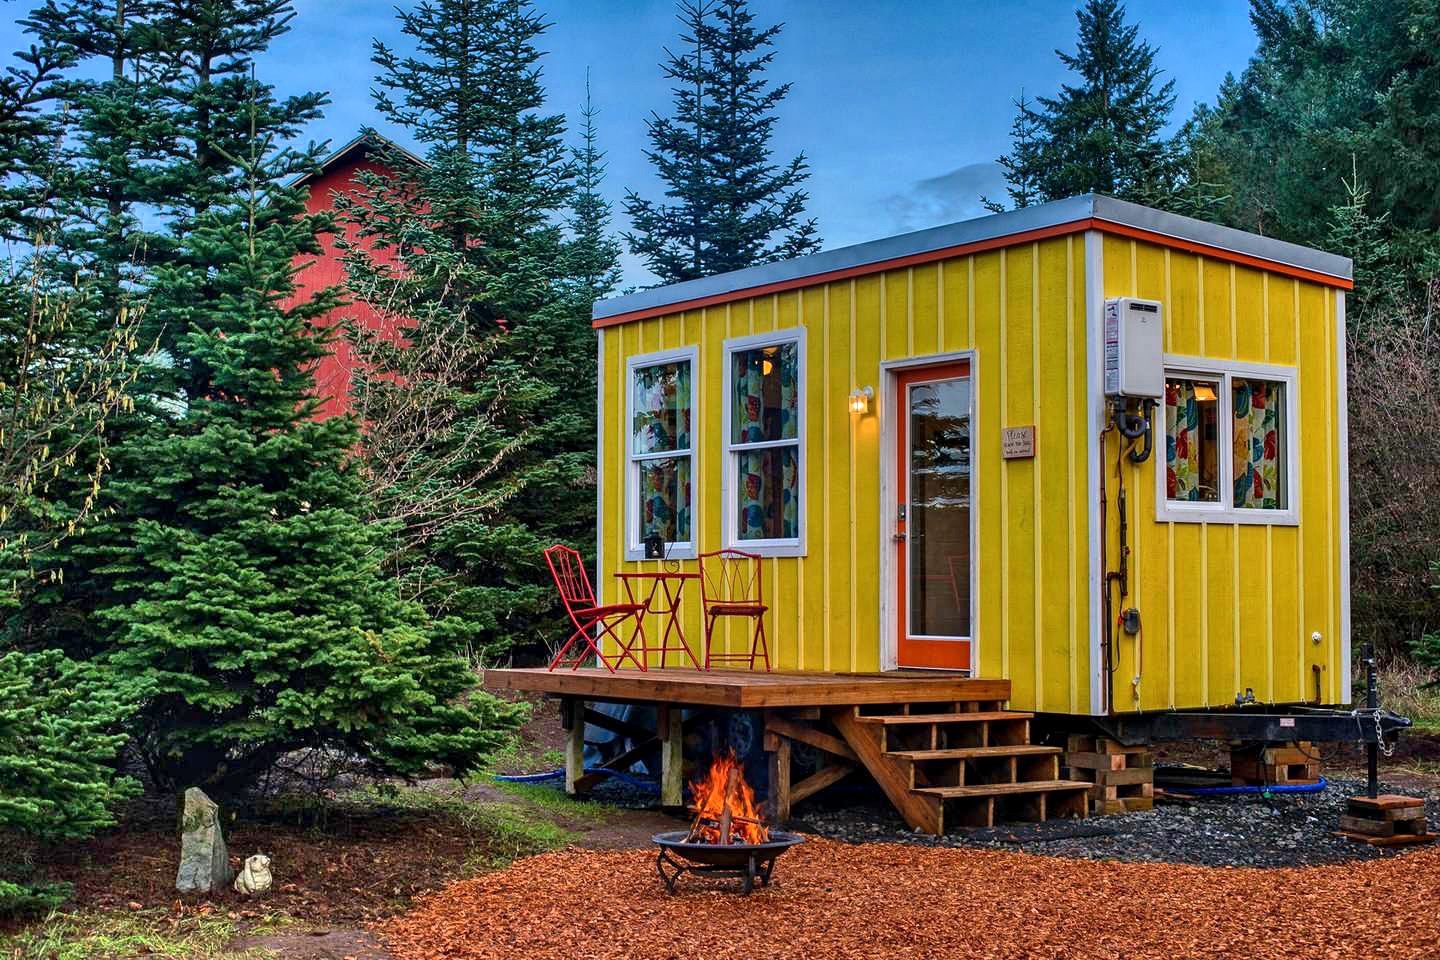 Bright yellow tiny house rental in a forest clearing near Sherwood, Oregon.